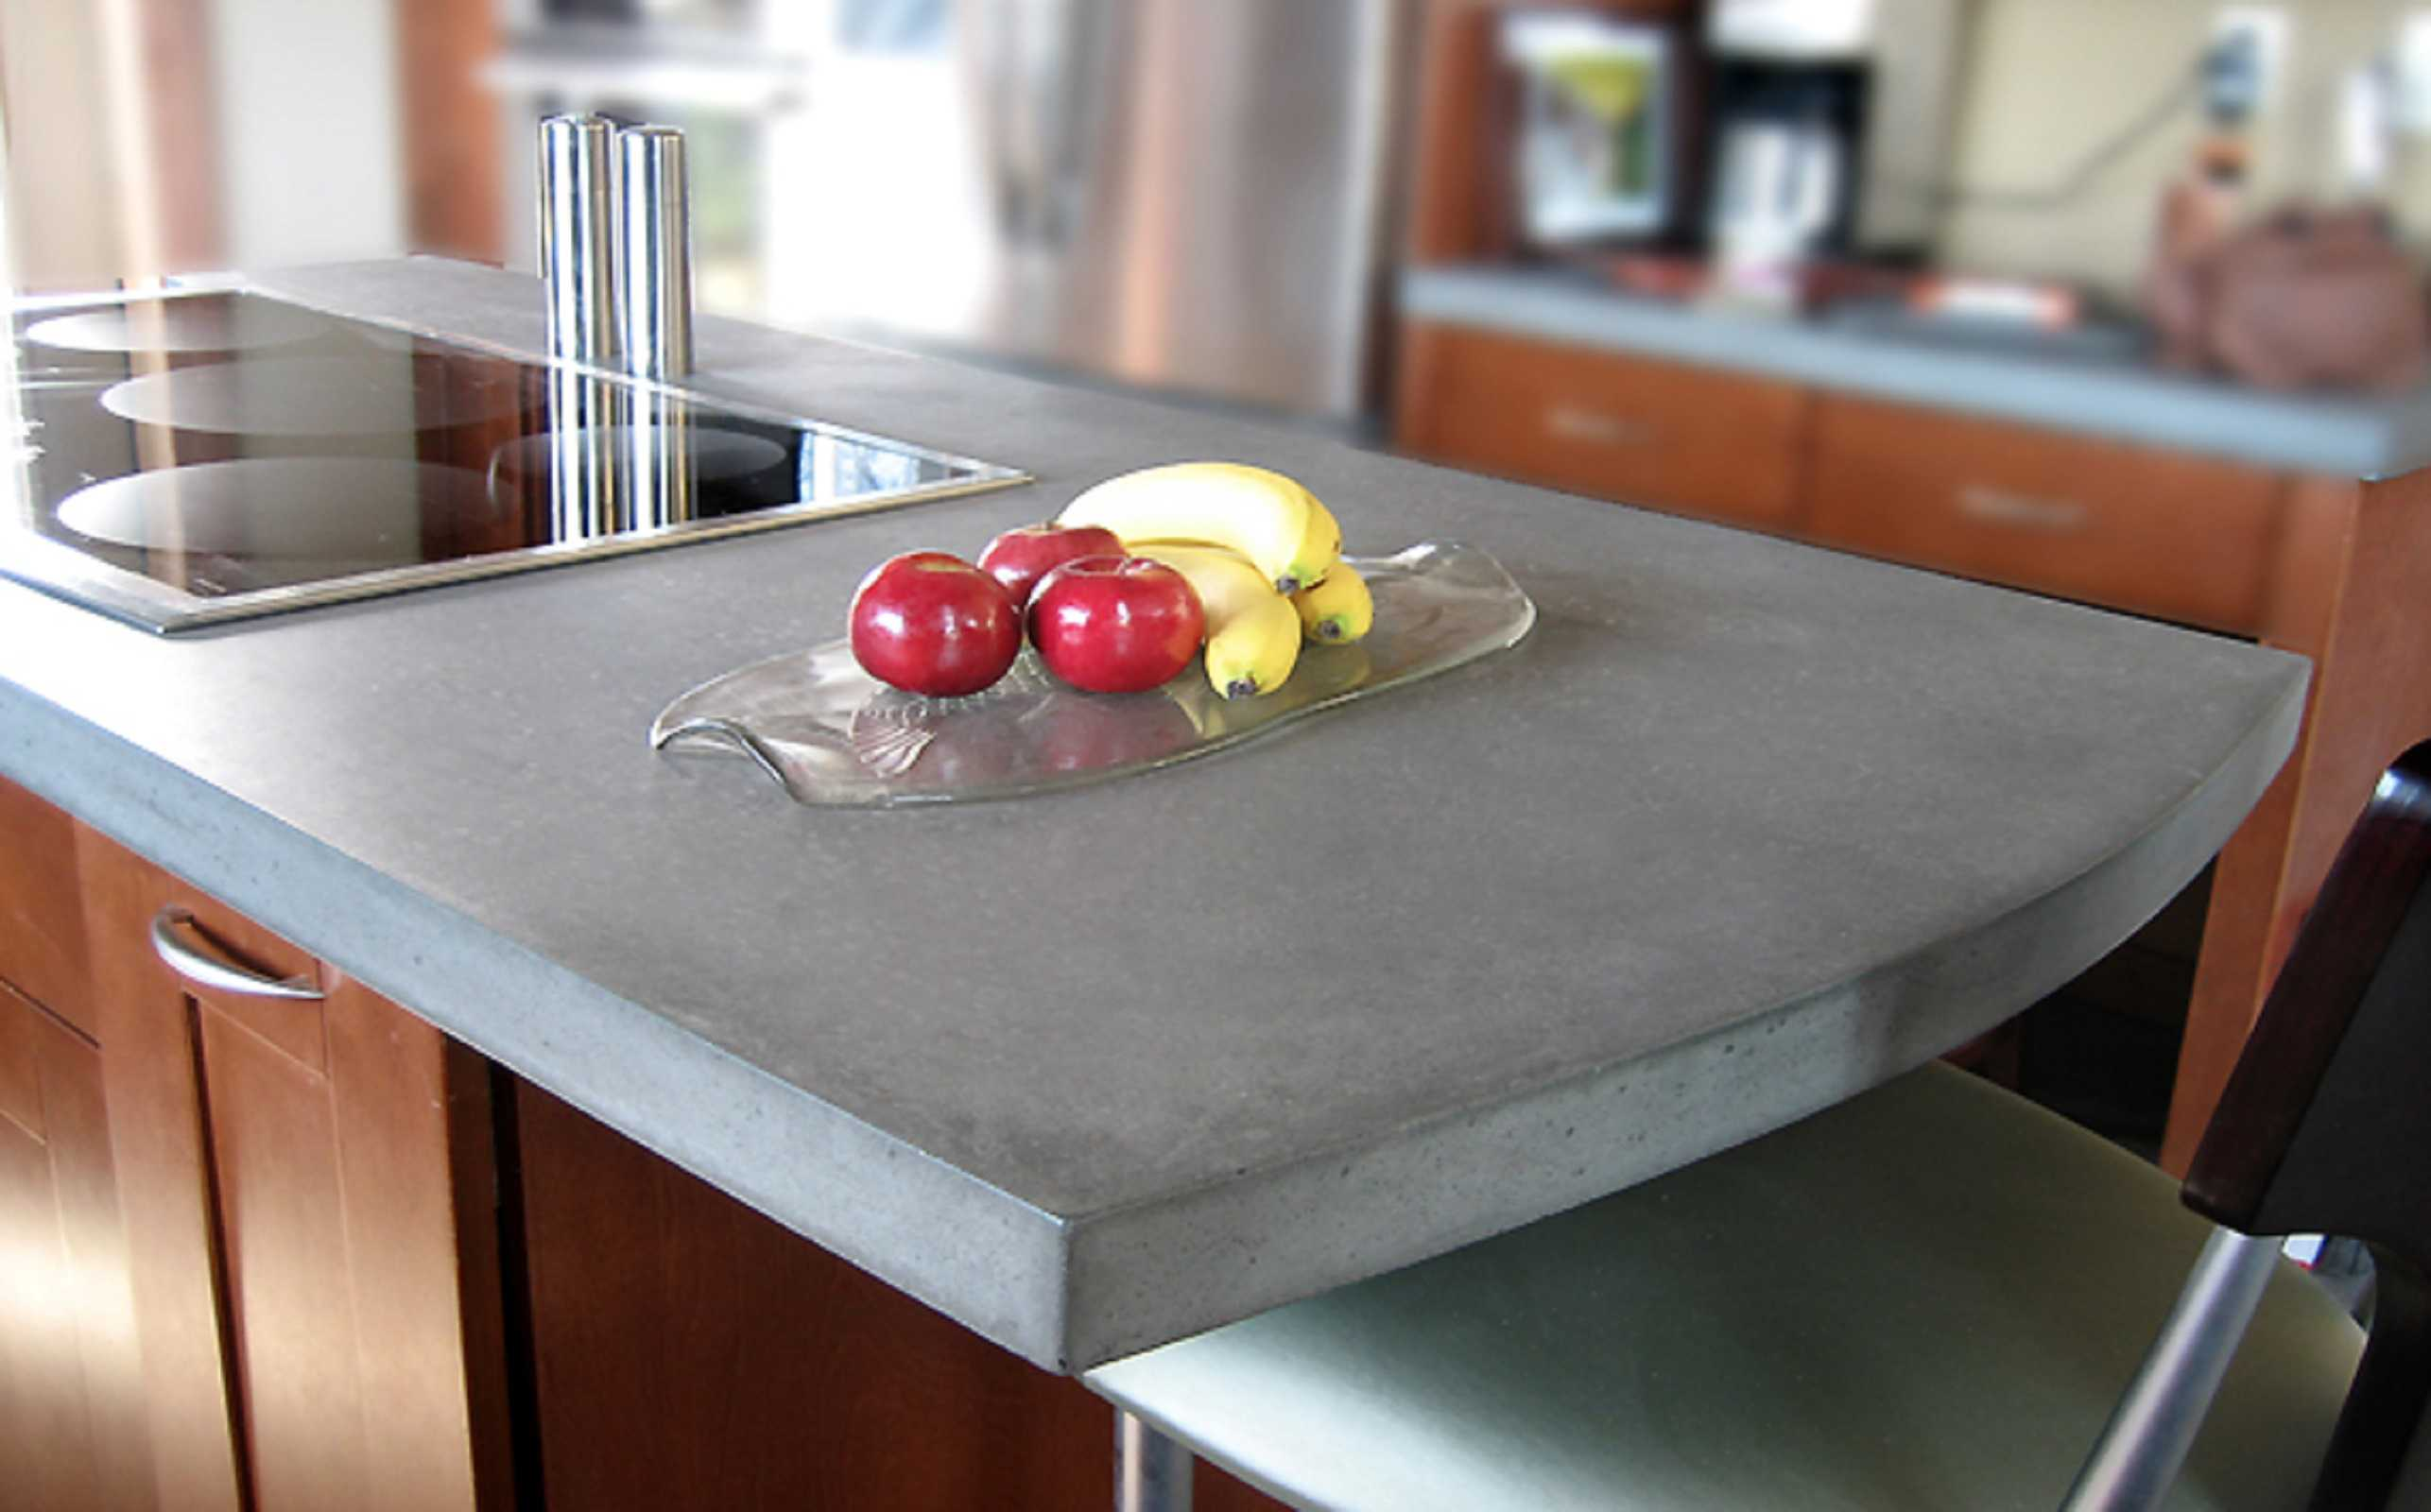 Natural Way To Clean Granite Countertops Cleaning Tips For 6 Types Of Stone Countertops